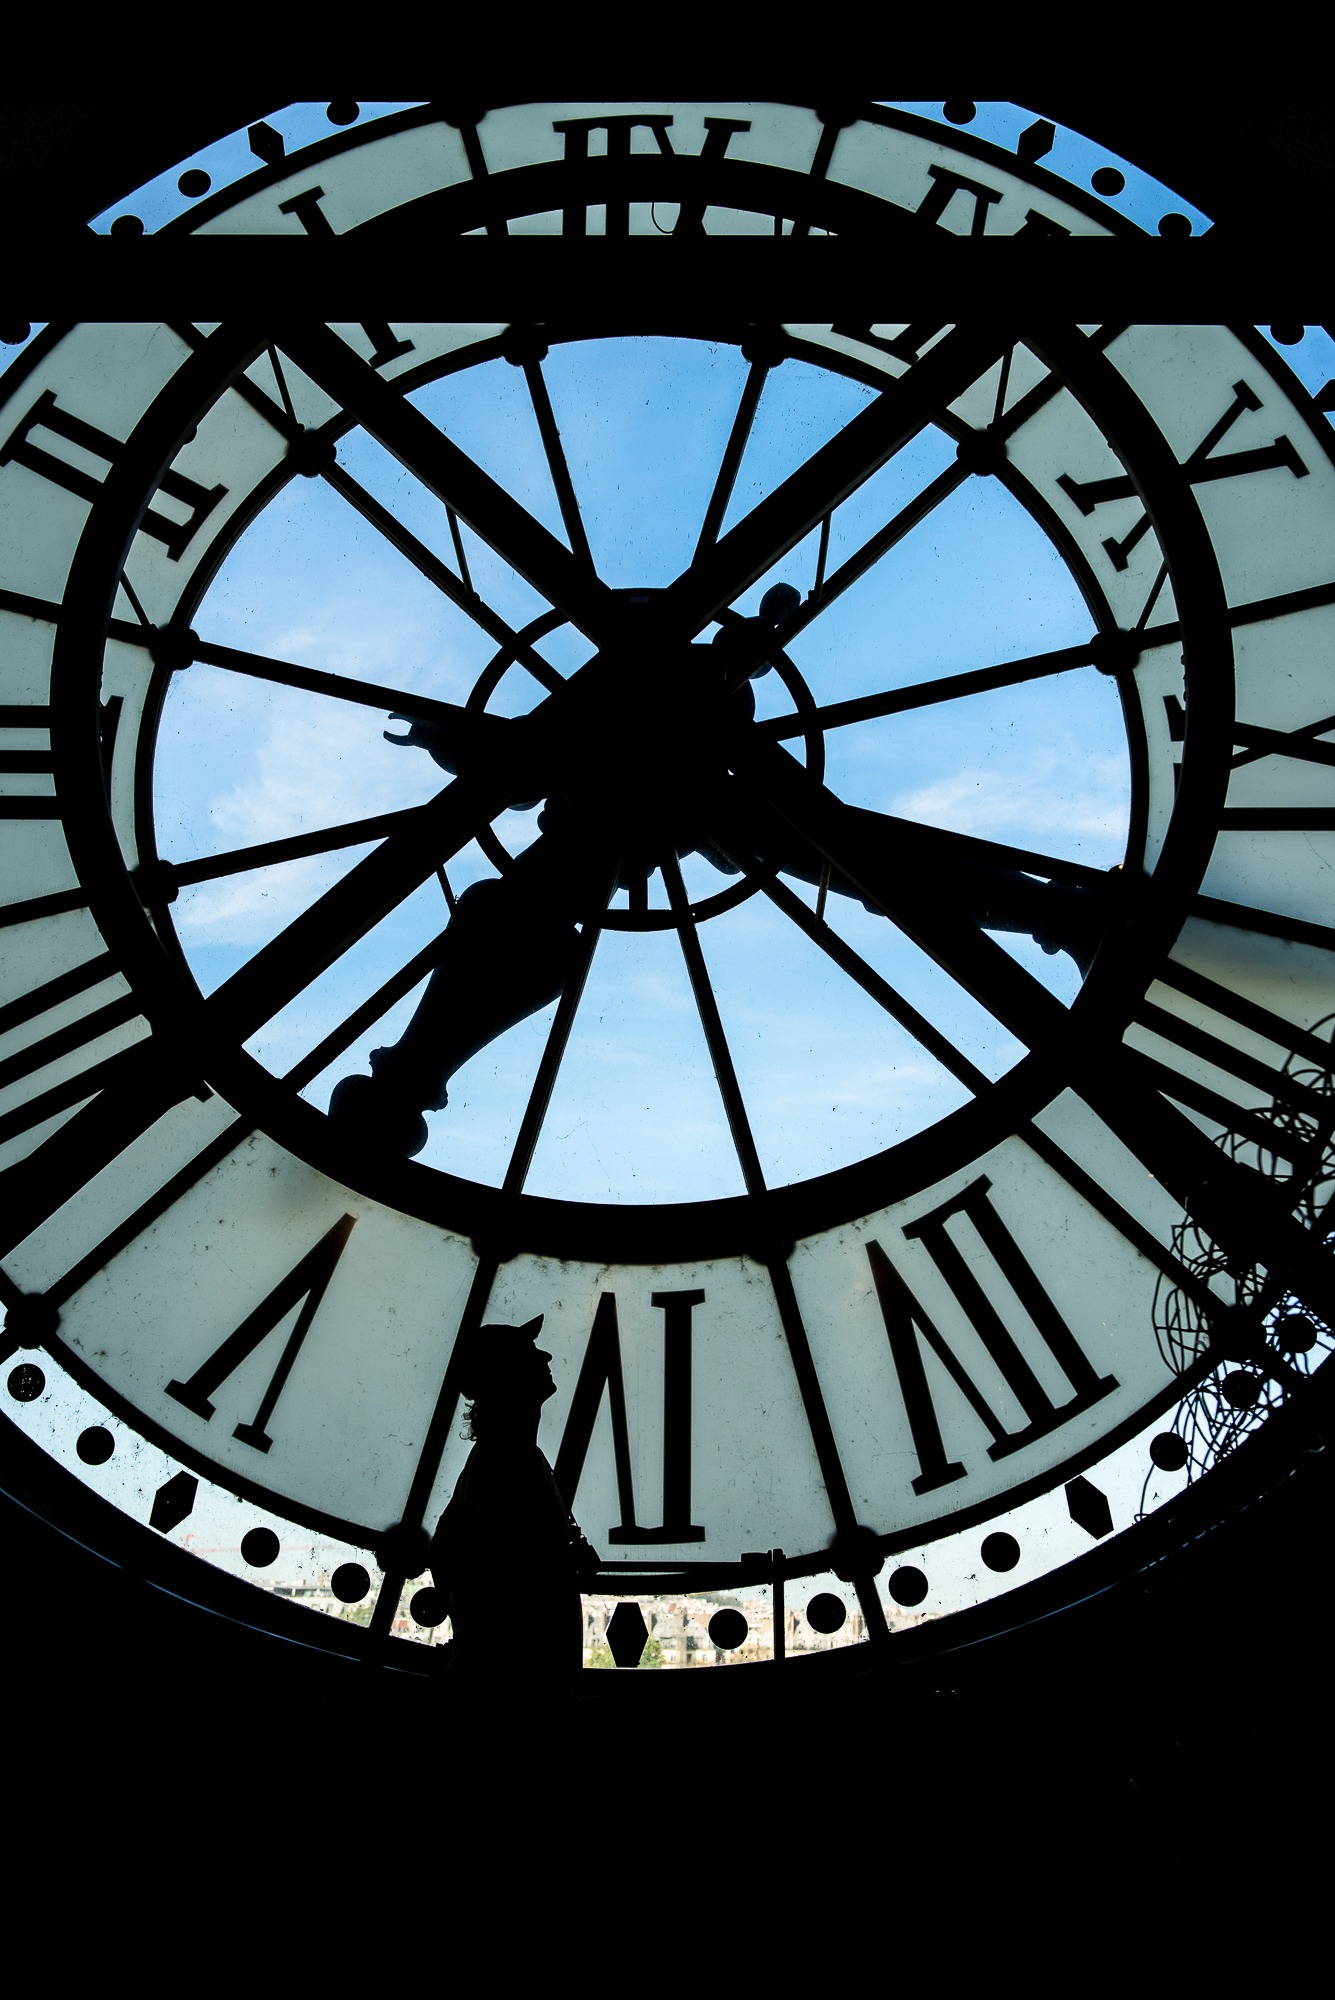 muse d'orsay clock paris france